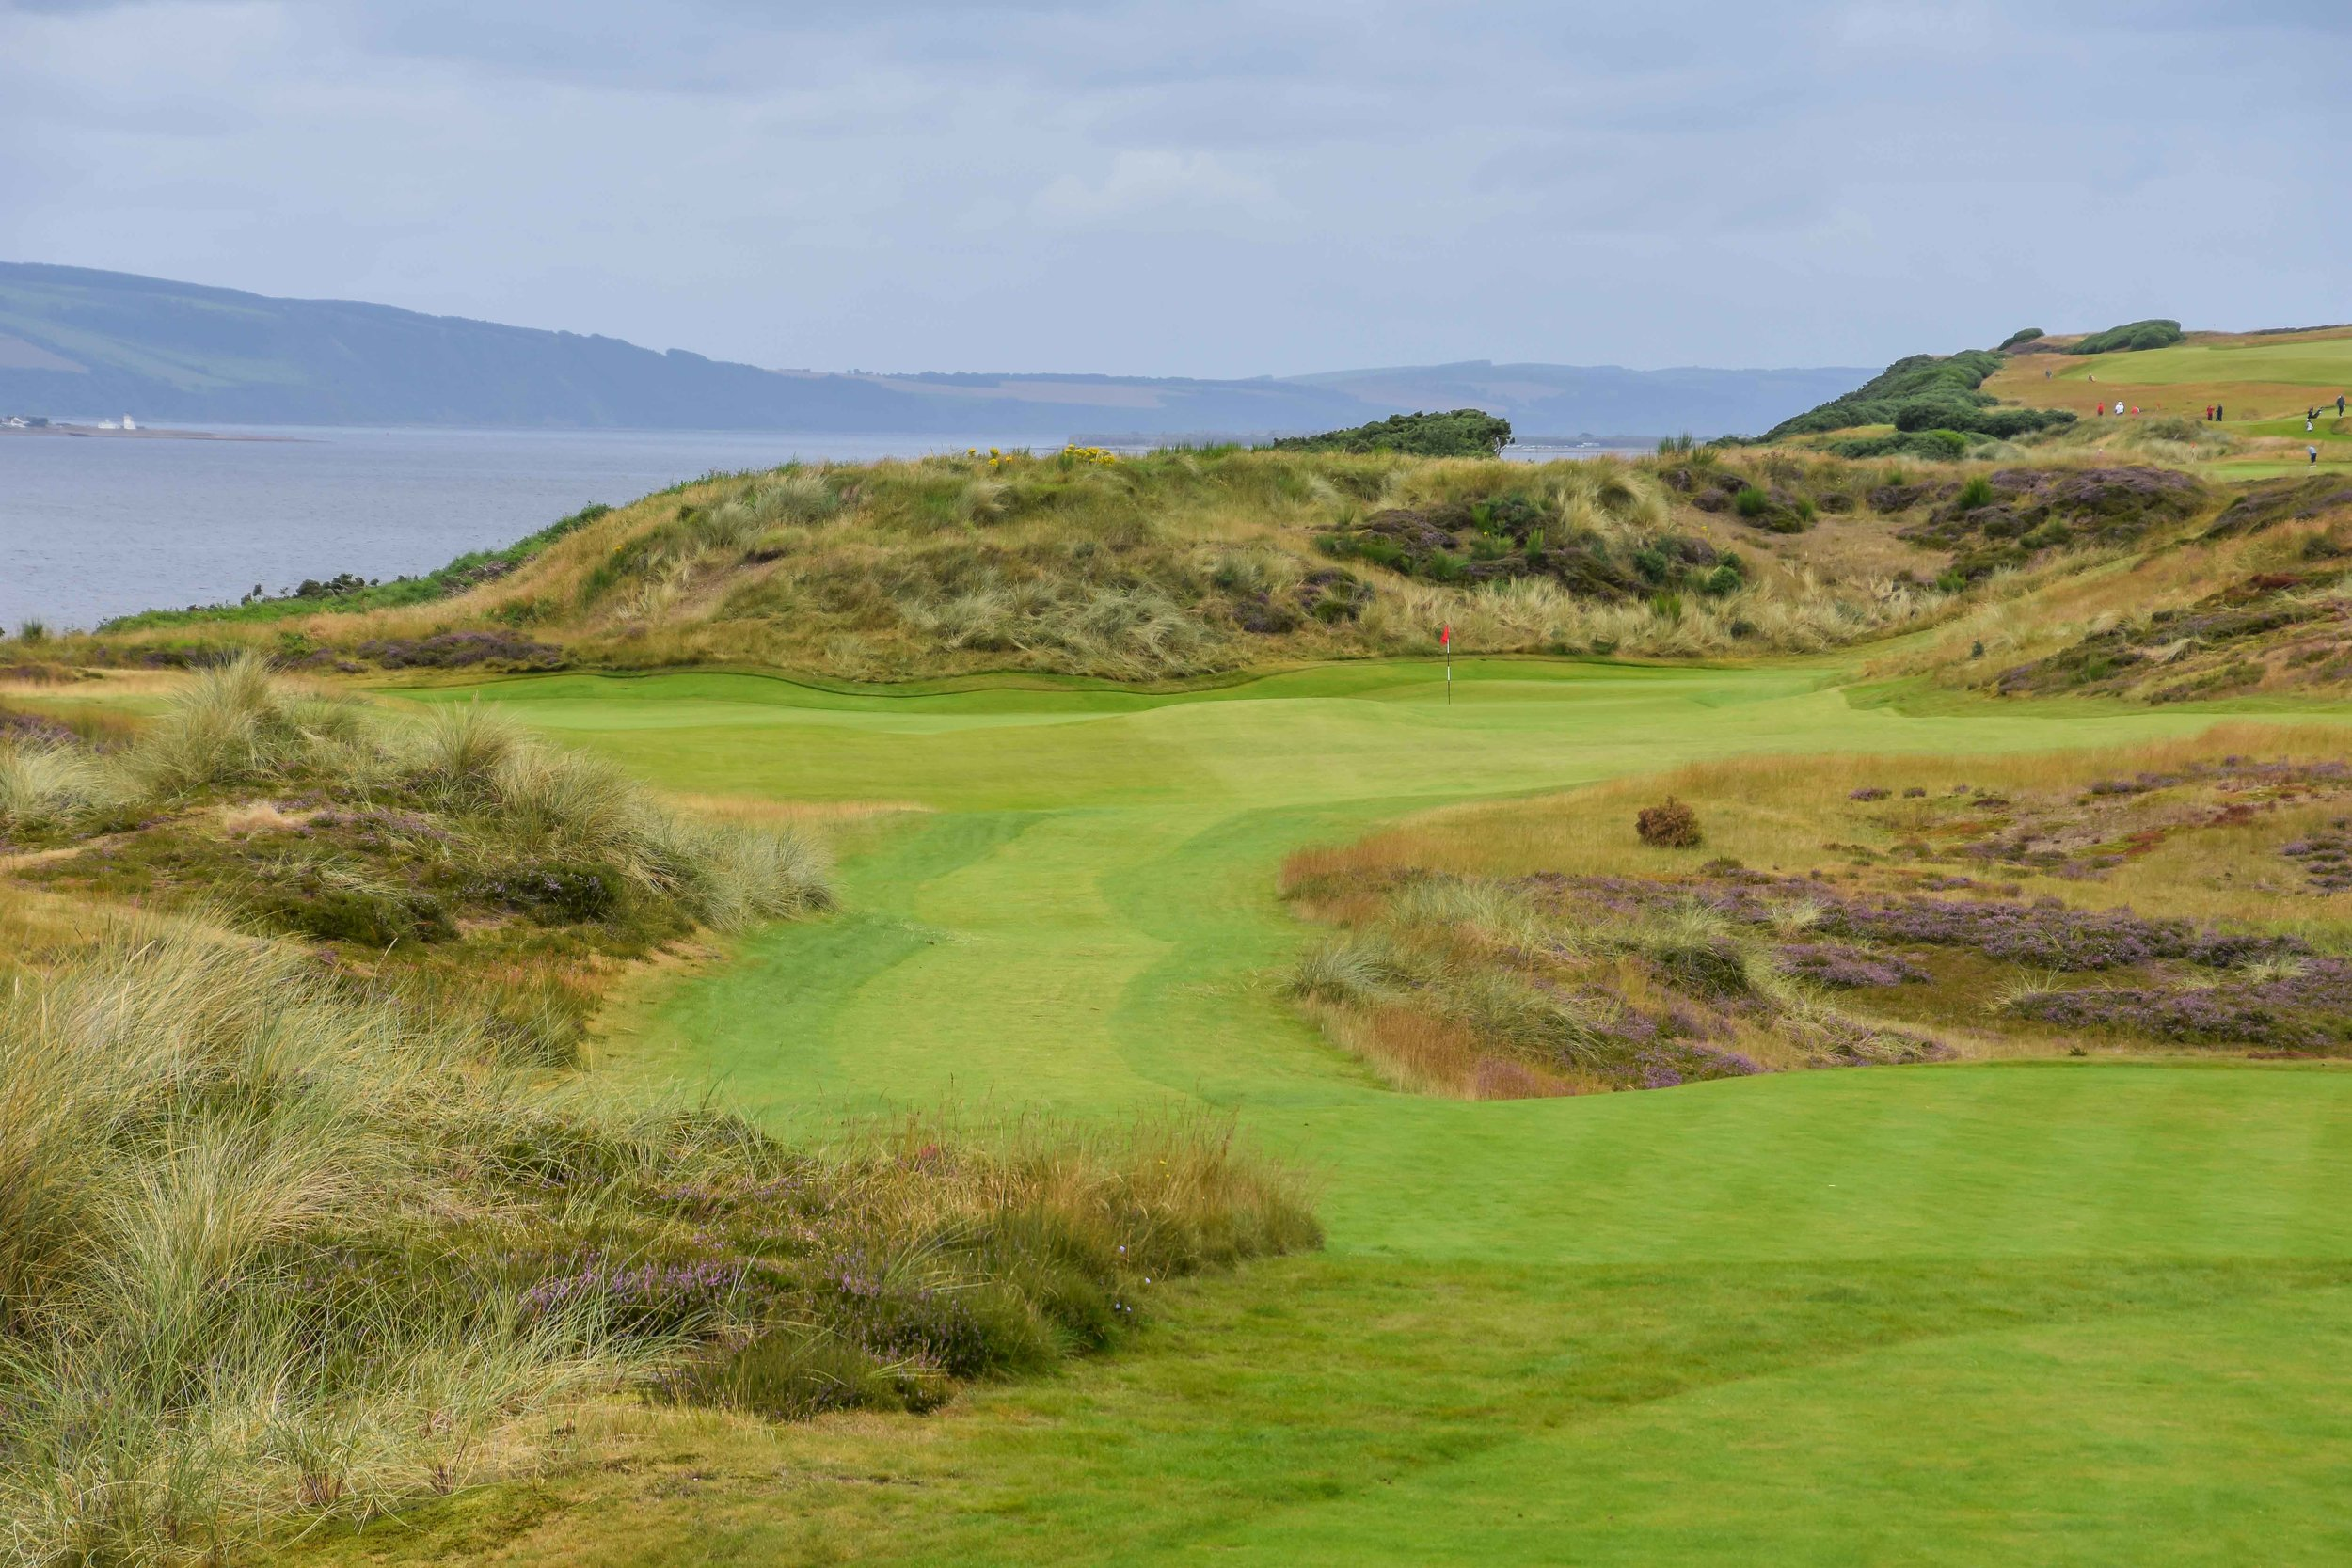 The par 3 8th hole at Castle Stuart